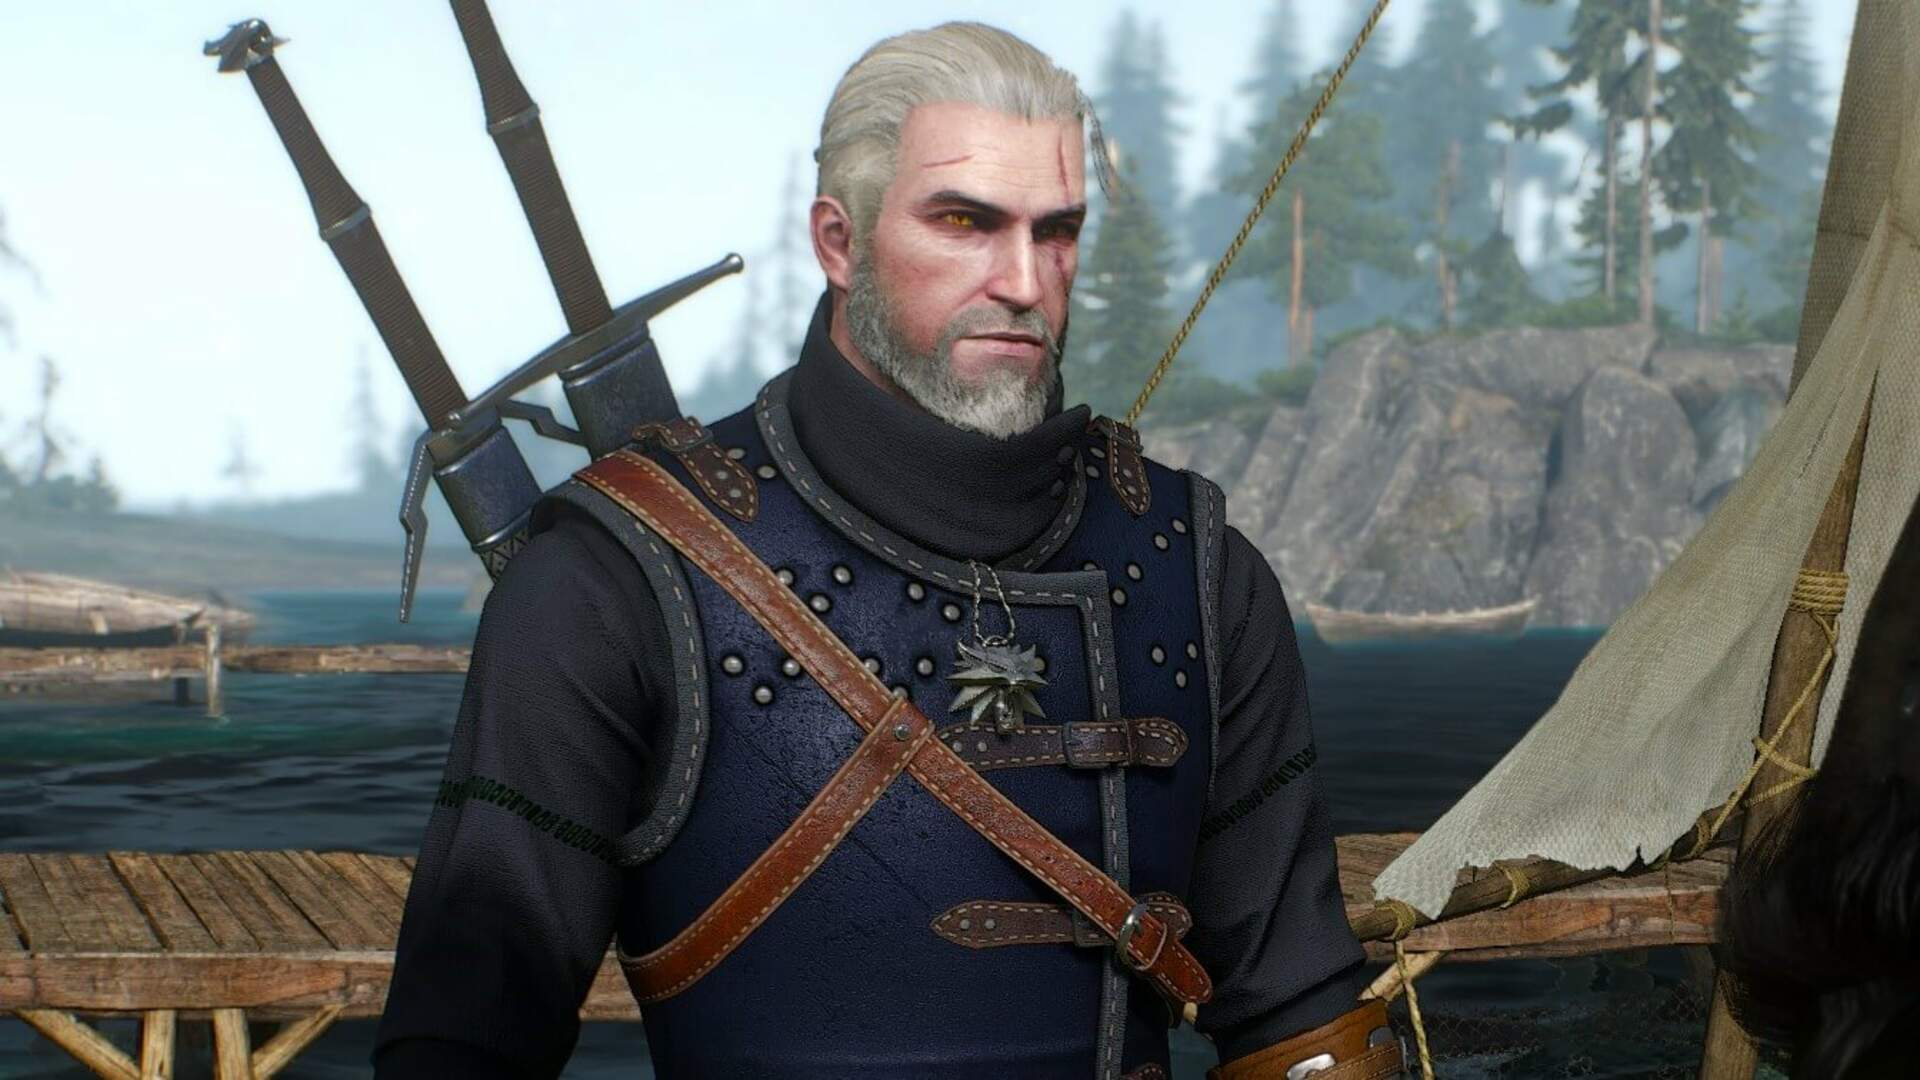 The Witcher 3 on Switch Rumors Are Gaining Steam Ahead of E3